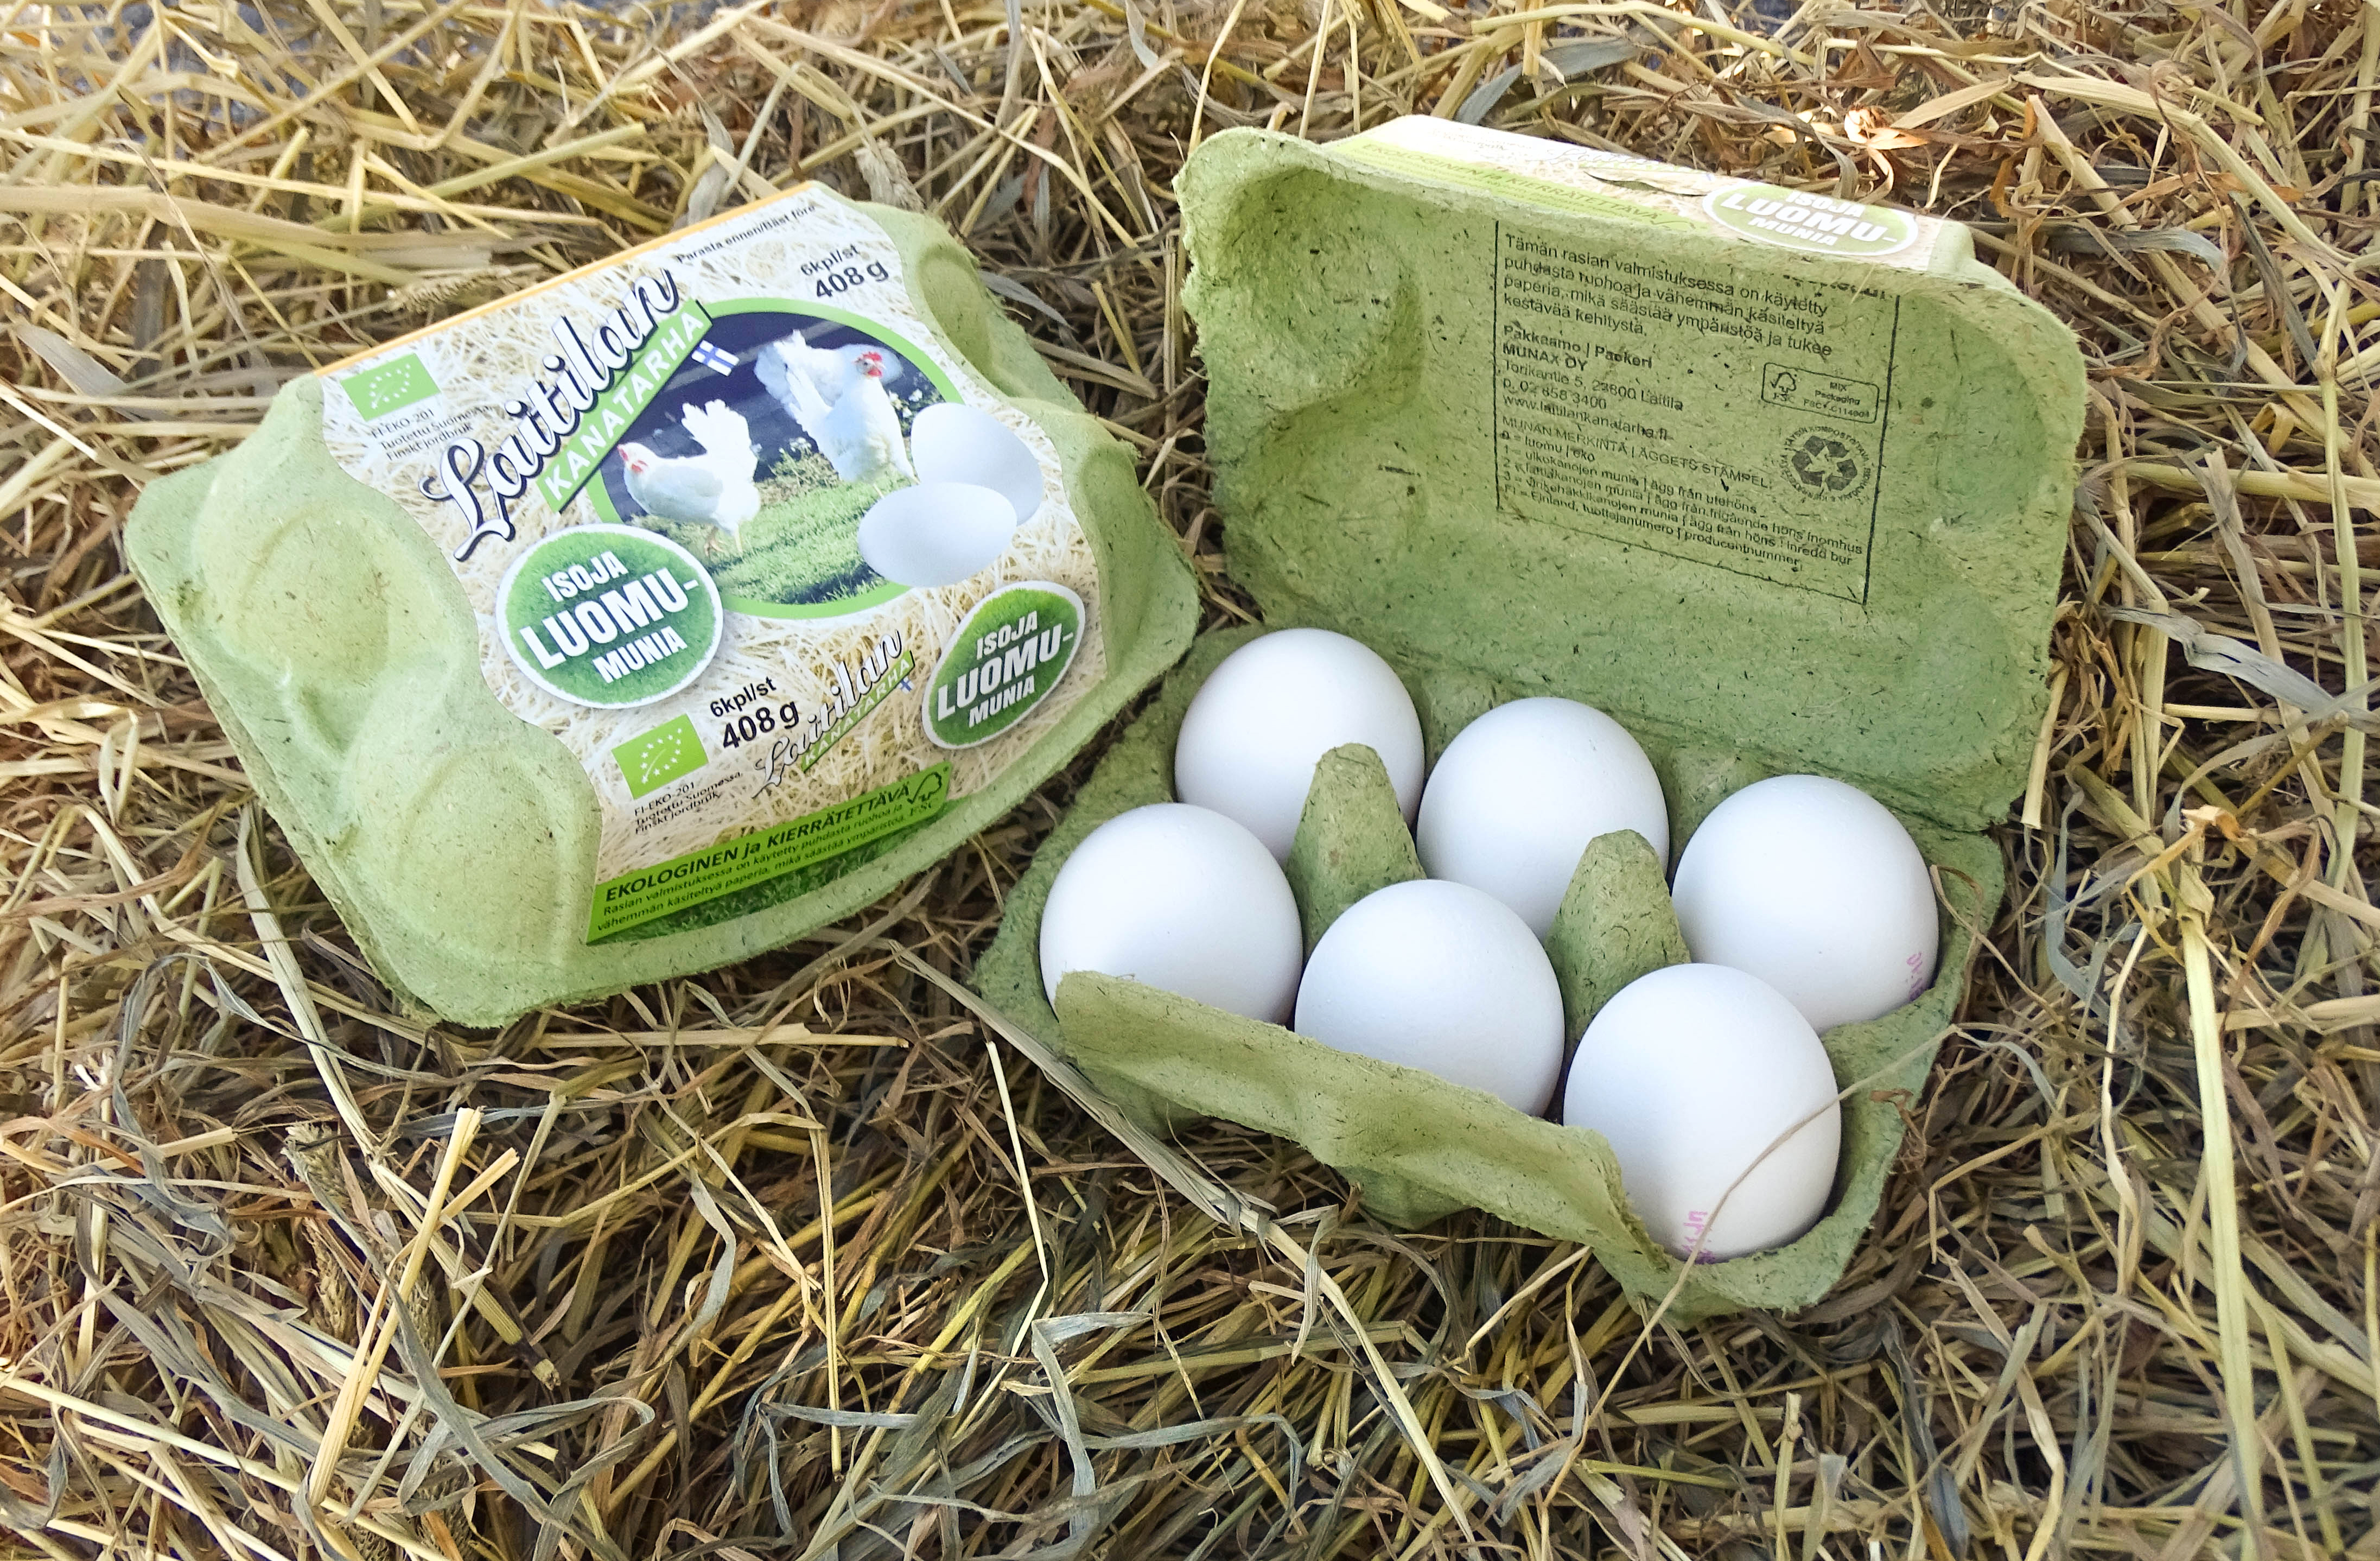 GreeNest - innovative egg packaging made with grass fibers. Photo: Munax Oy